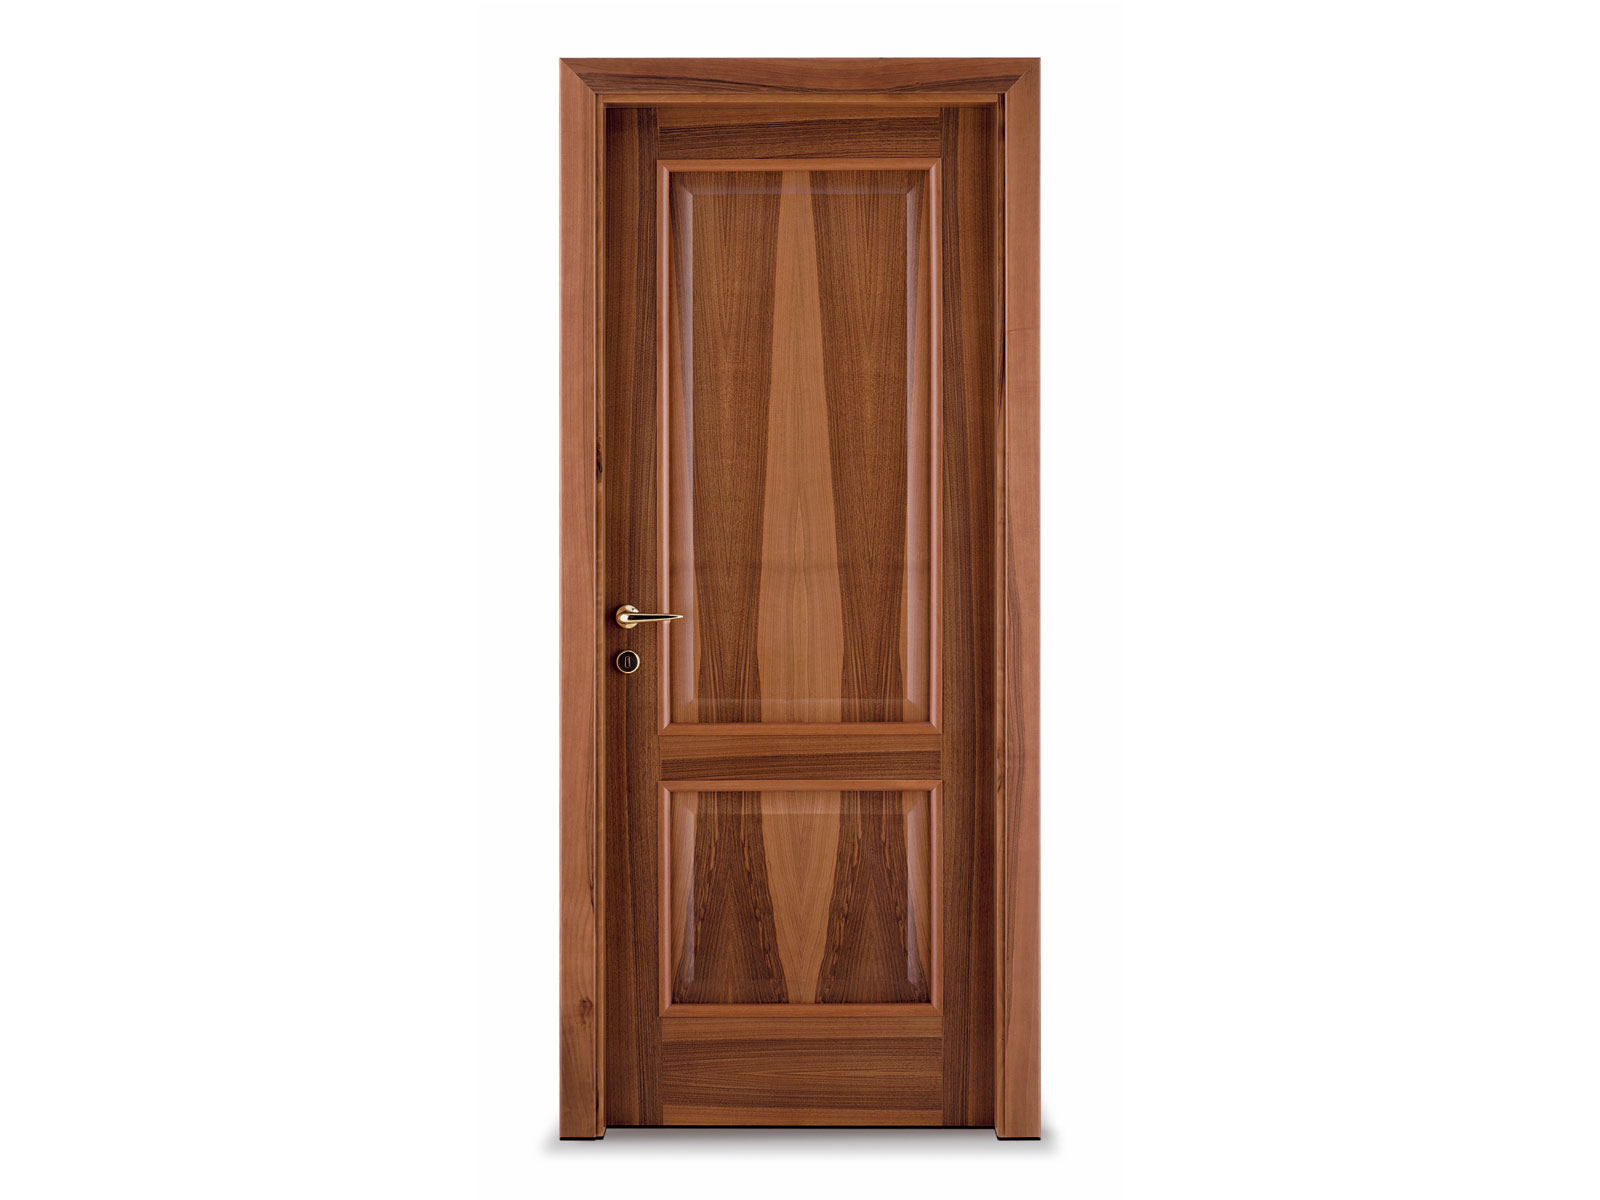 Hinged wooden door classic by ghizzi benatti for Traditional wooden door design ideas